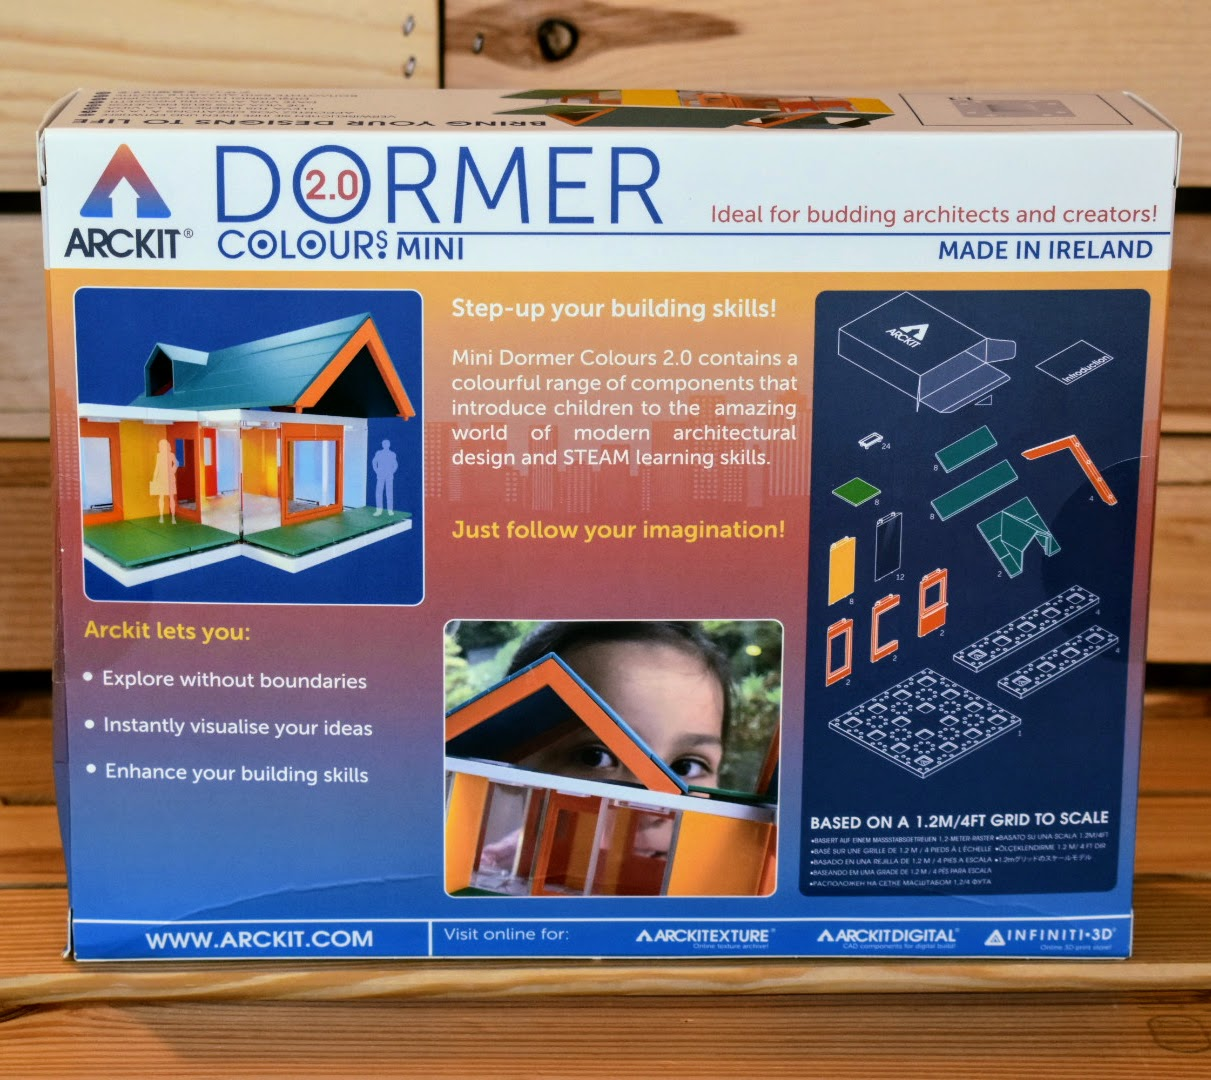 Arckit Dormer 2.0 Colours Mini